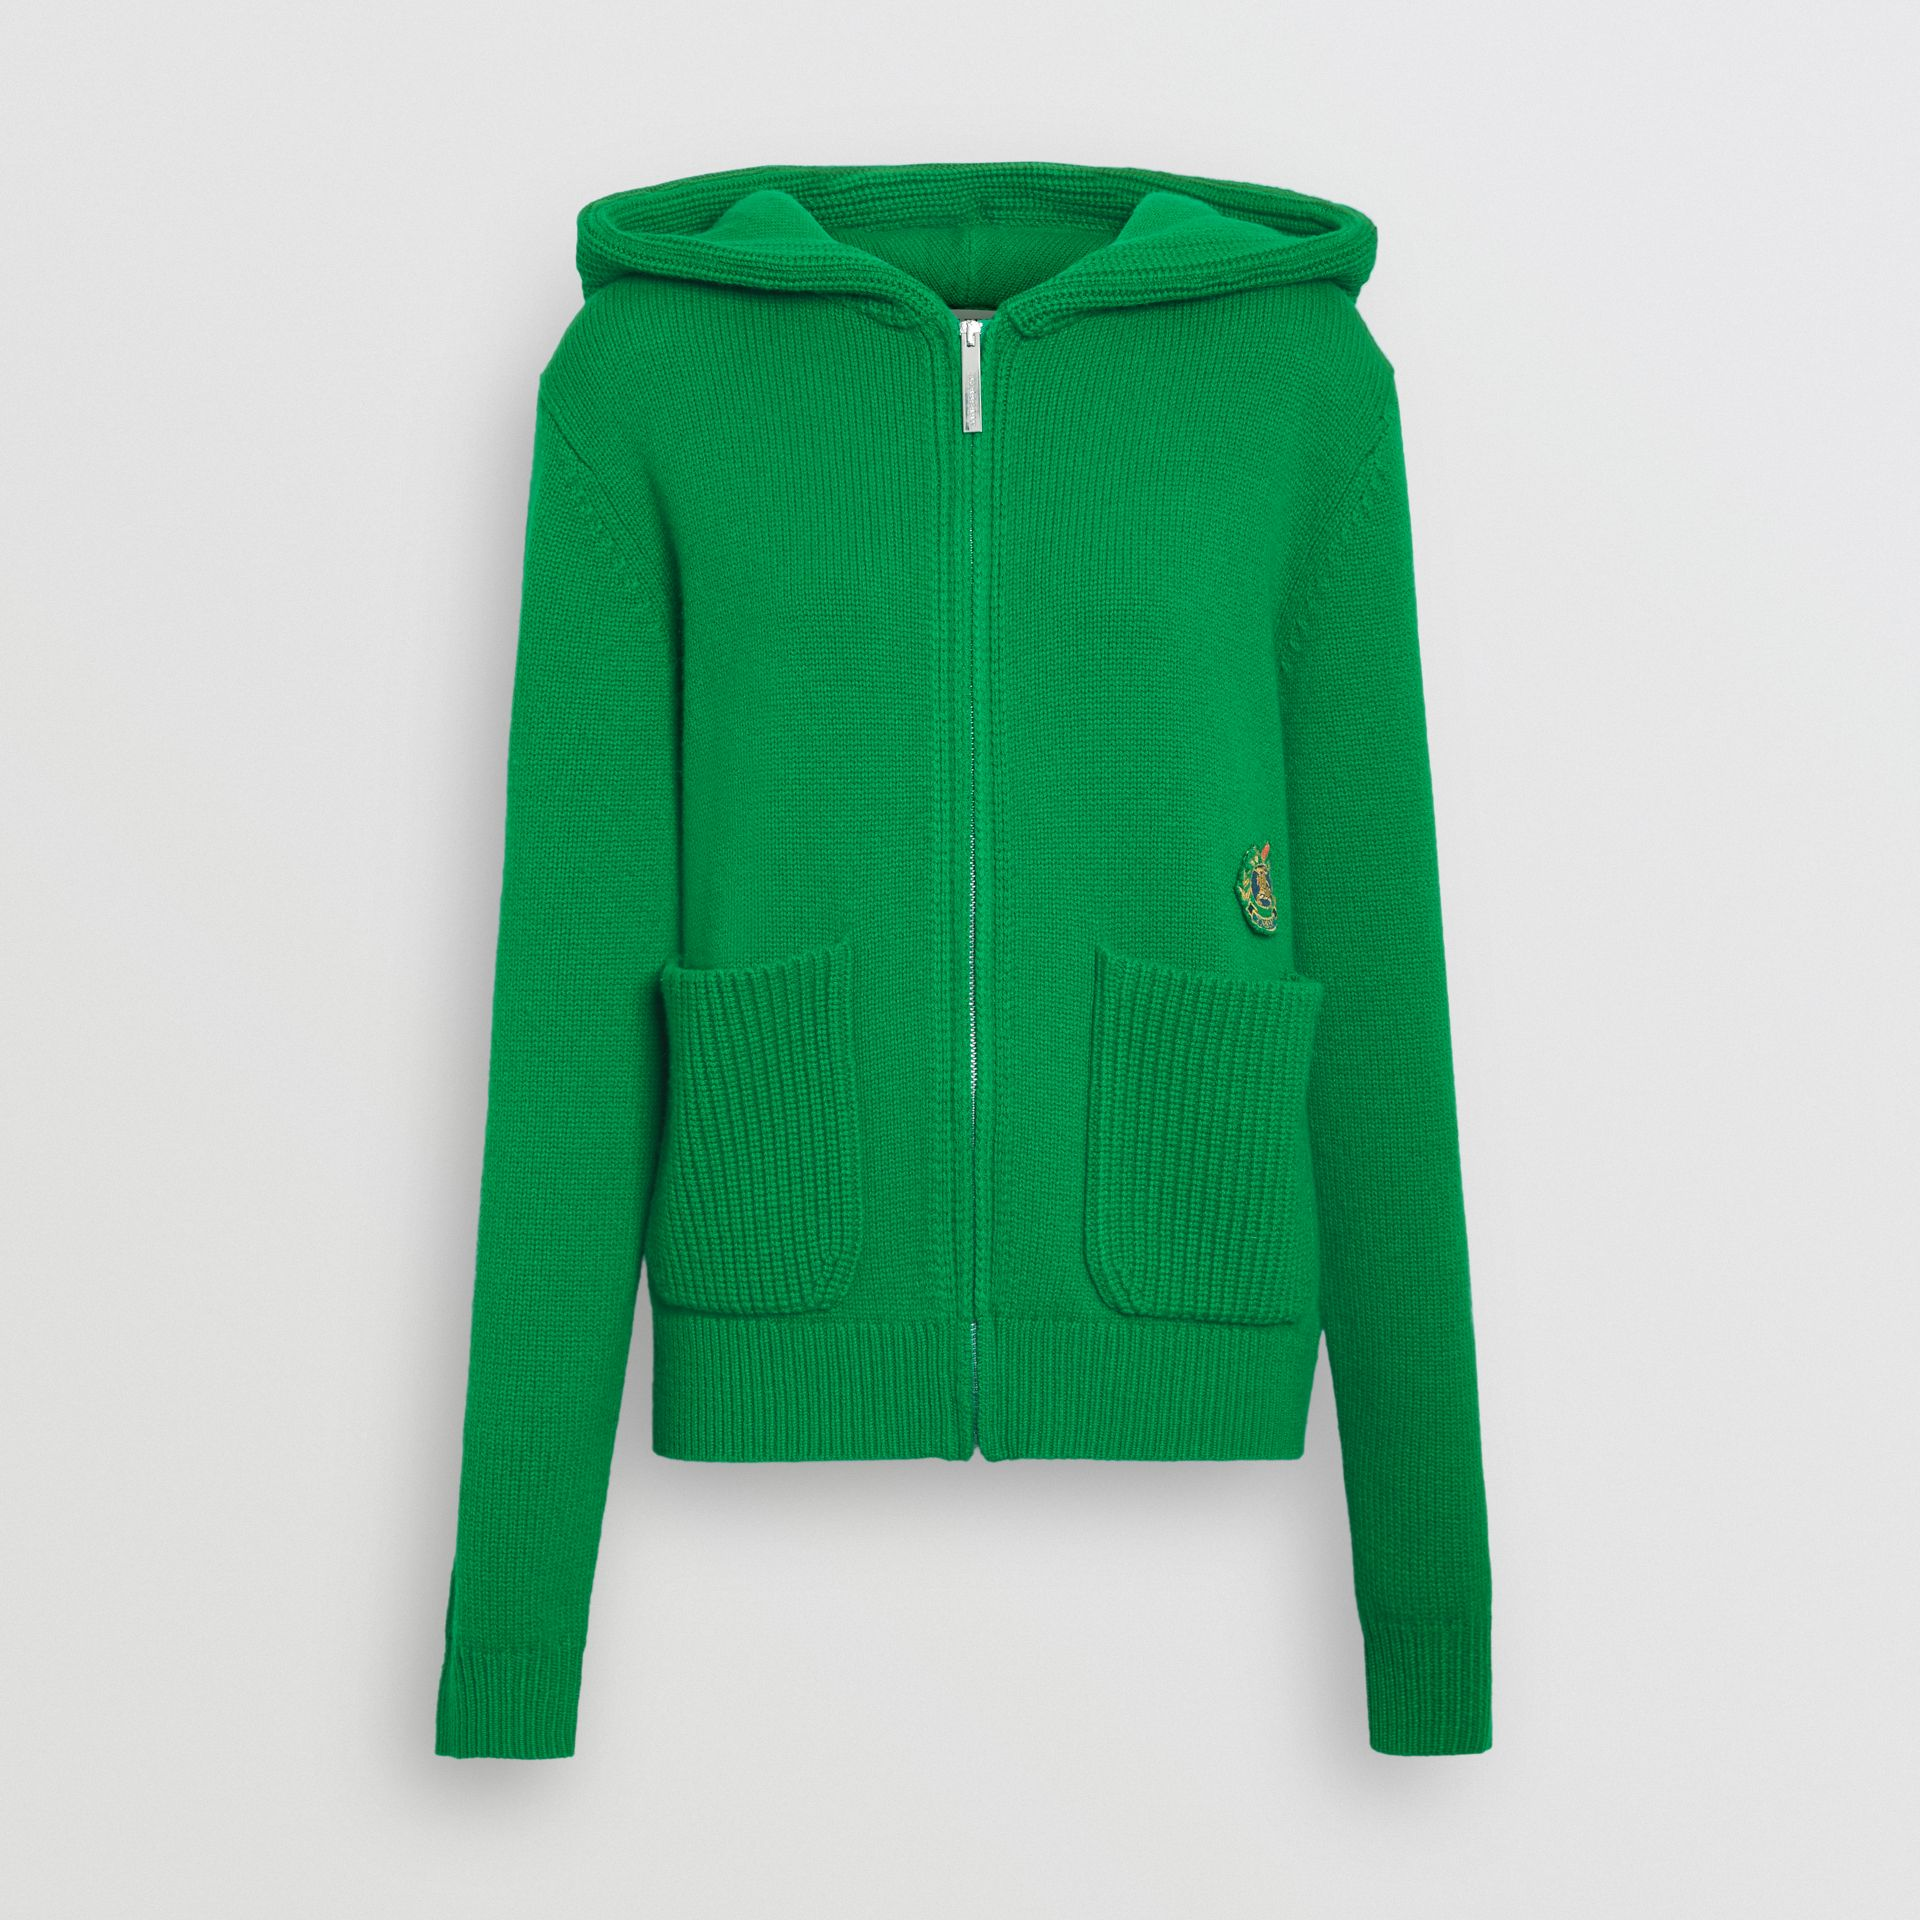 Embroidered Archive Logo Cashmere Hooded Top in Vibrant Green - Women | Burberry United Kingdom - gallery image 3